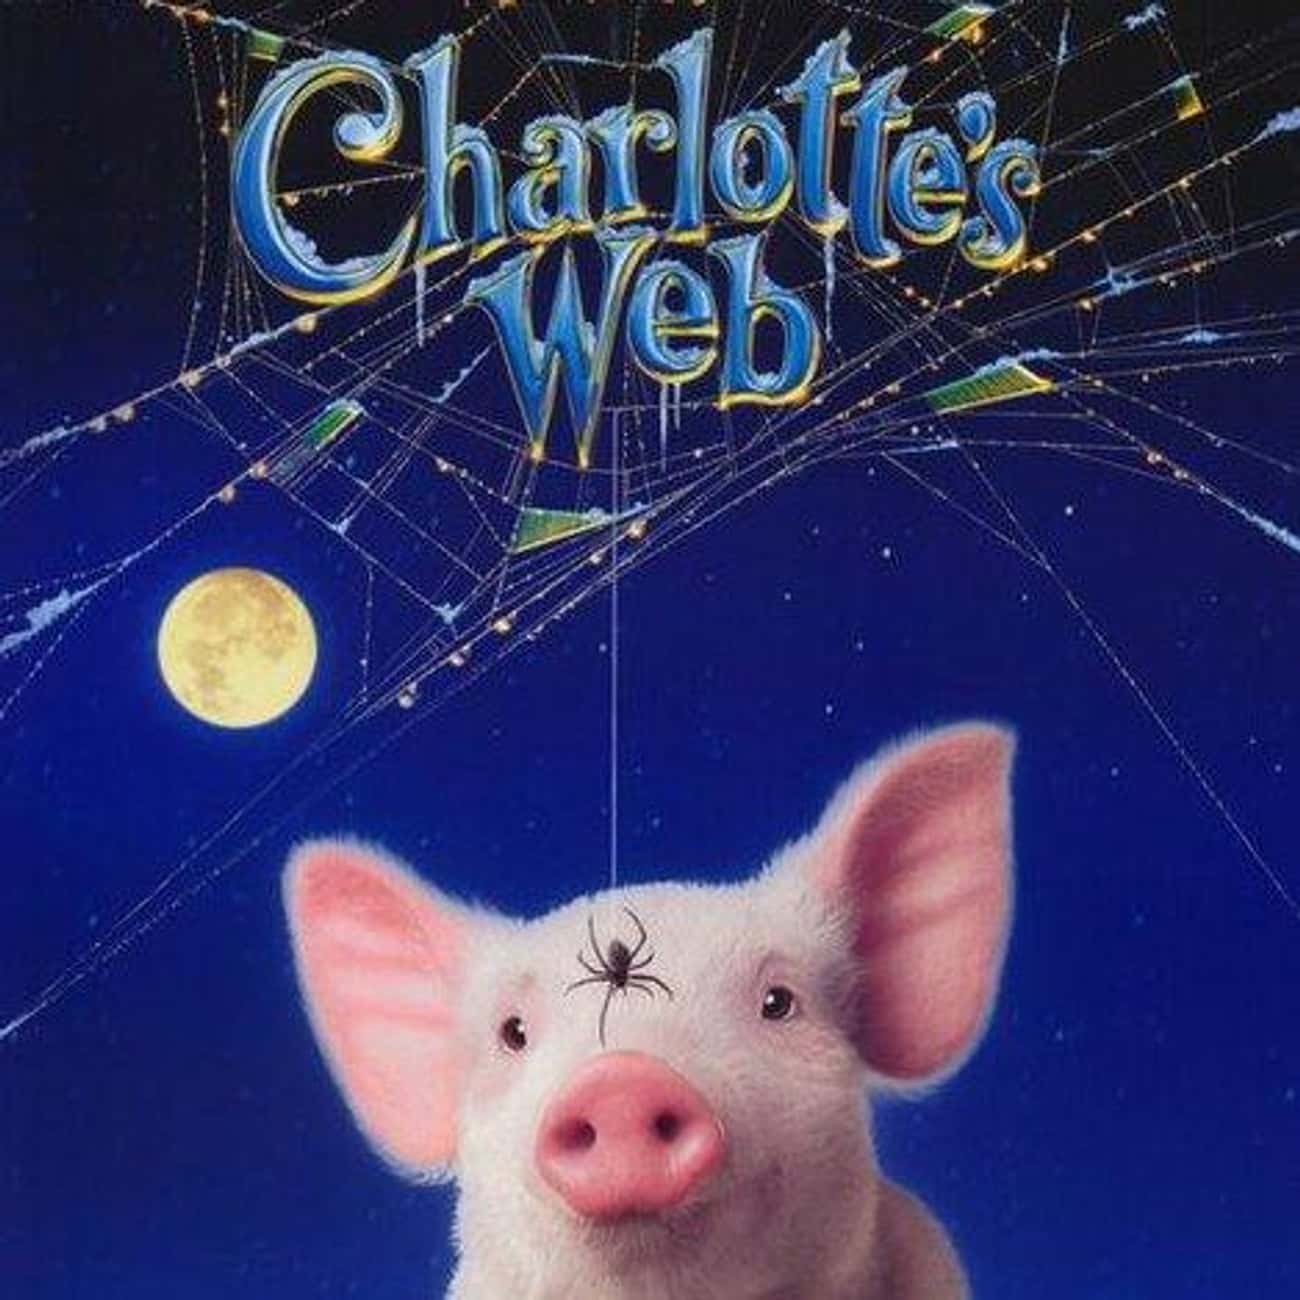 Charlotte's Web is listed (or ranked) 3 on the list Movies & TV Shows to Watch If You Love Wonder